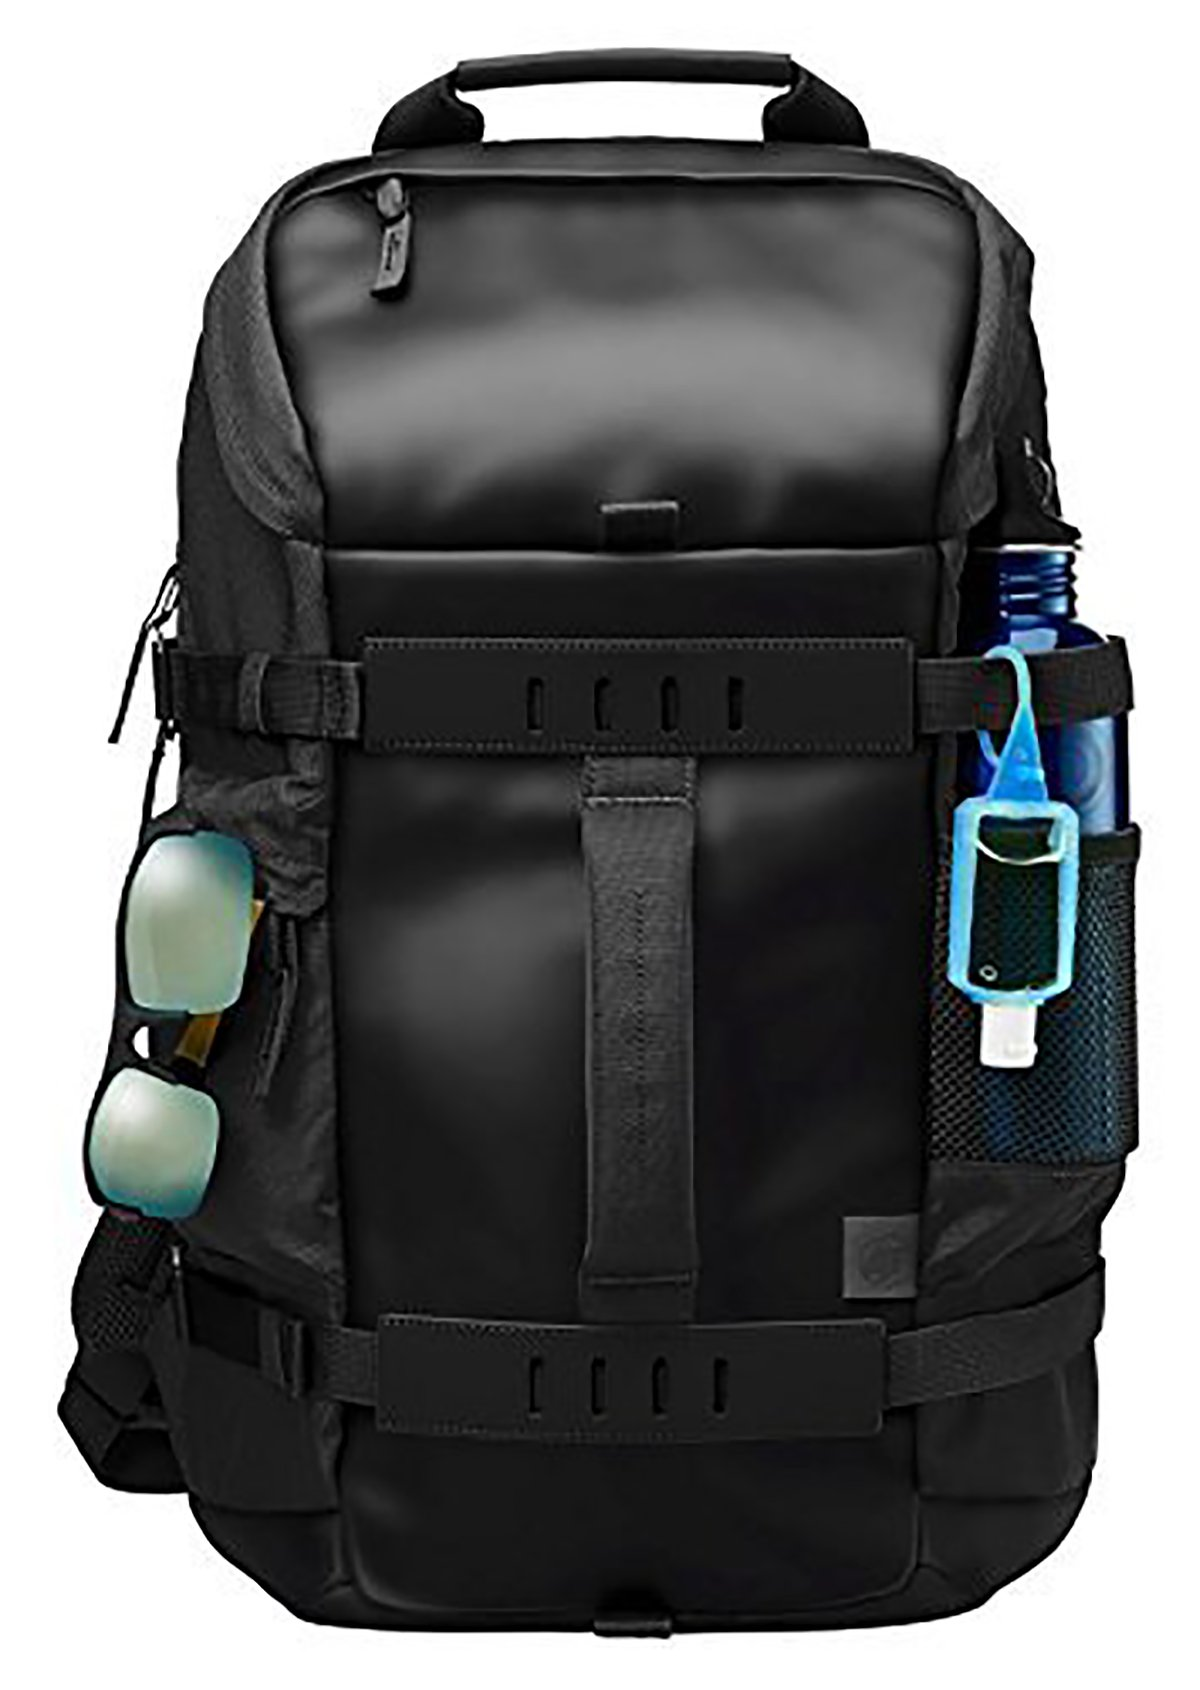 HP Odyssey L8J88AA Backpack for 15.6-inch Laptop product image